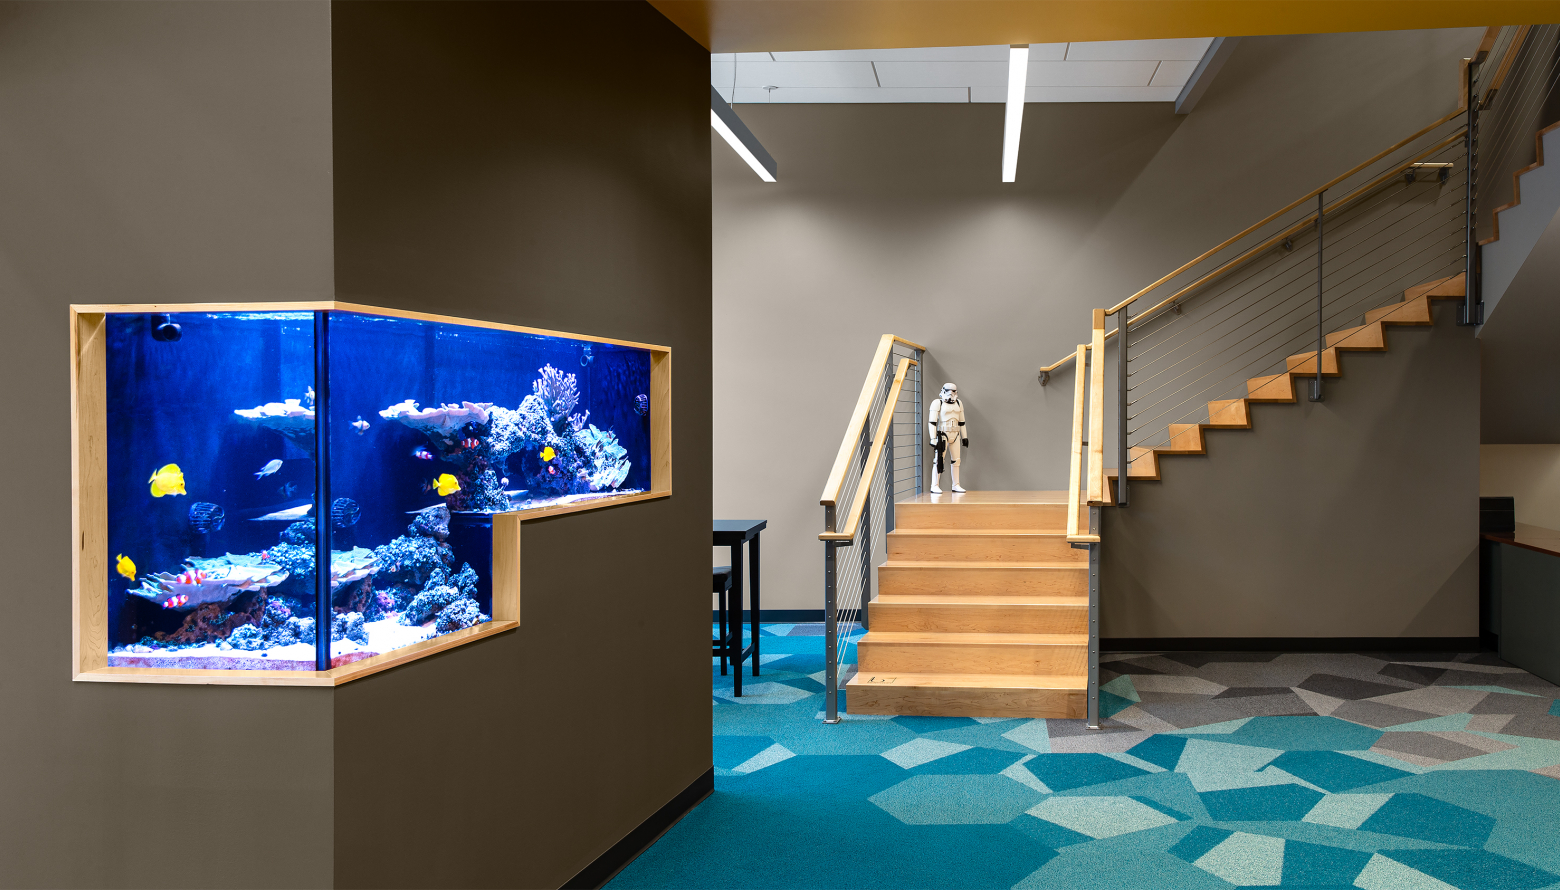 fish tank and stairs in the lobby of a building